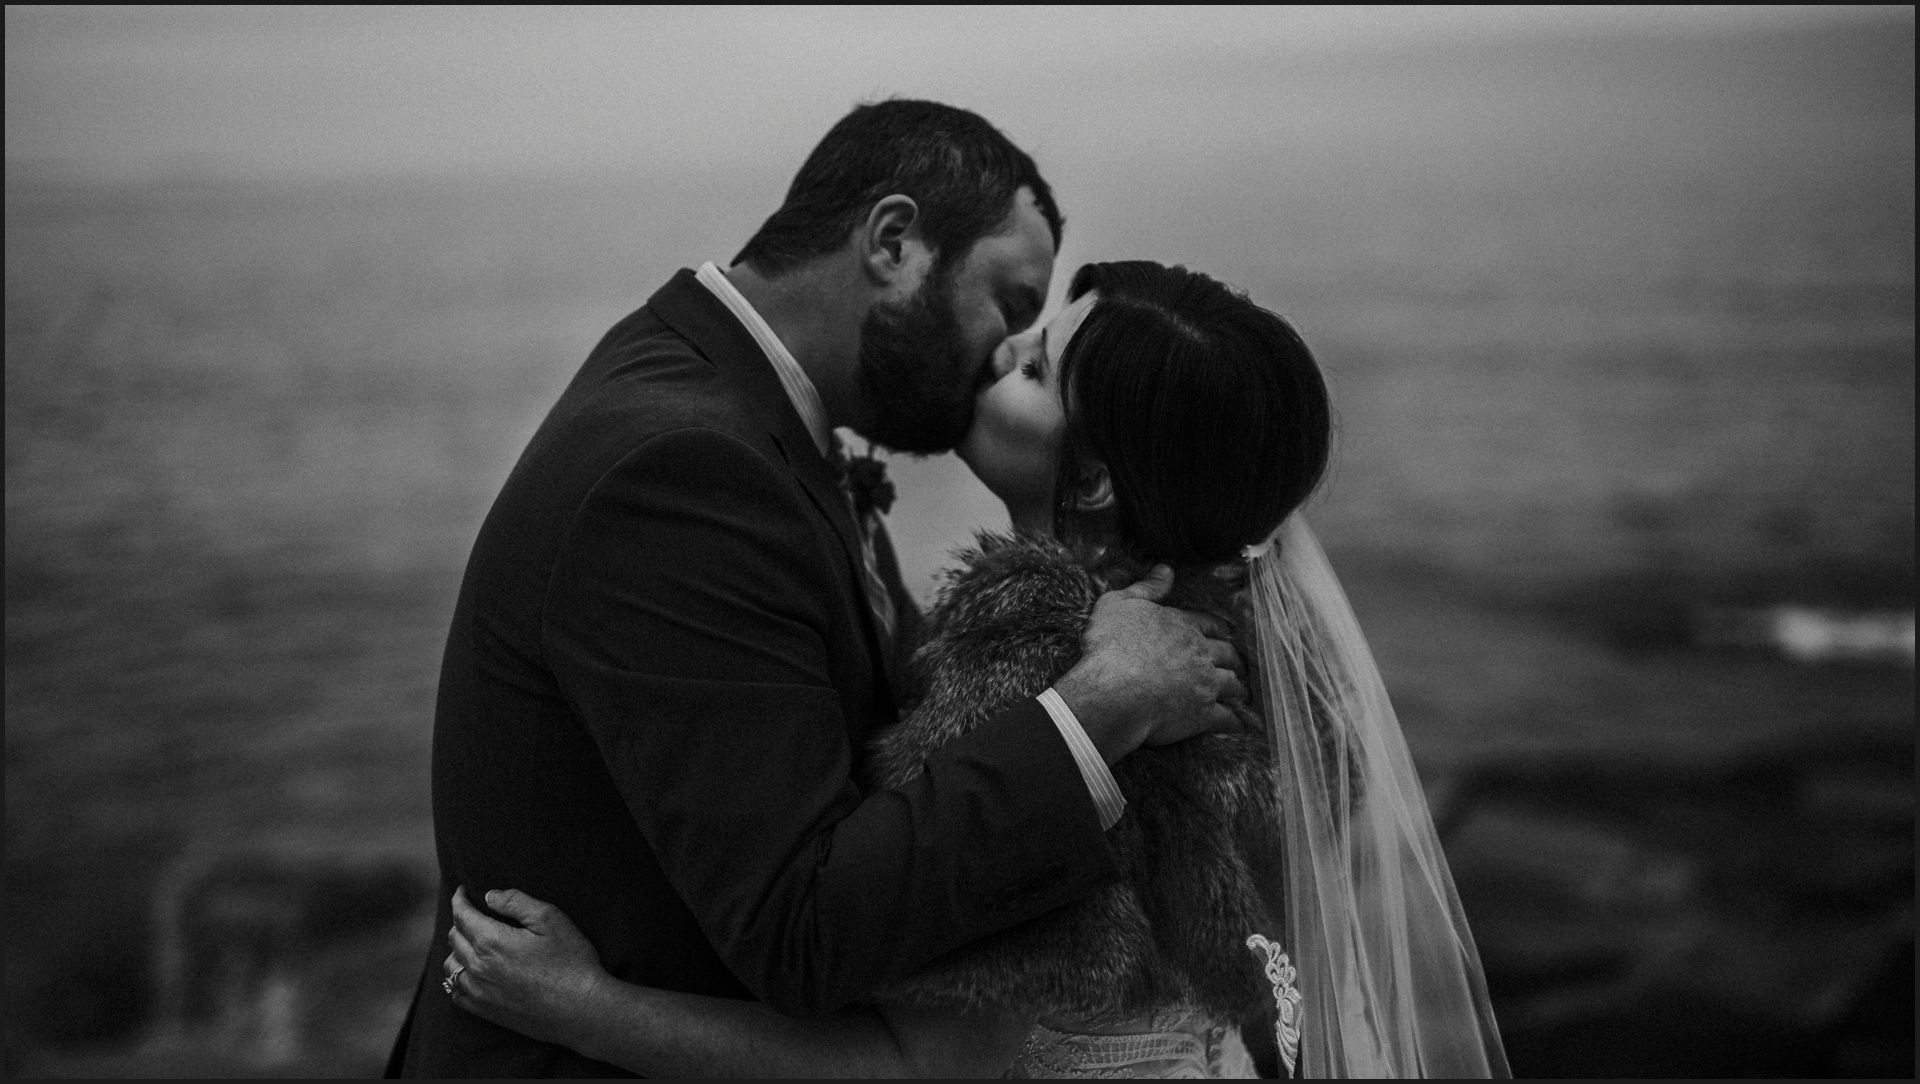 bride, groom, bar harbor, maine wedding, black and white, landscape, wedding by the ocean, kiss, destination wedding